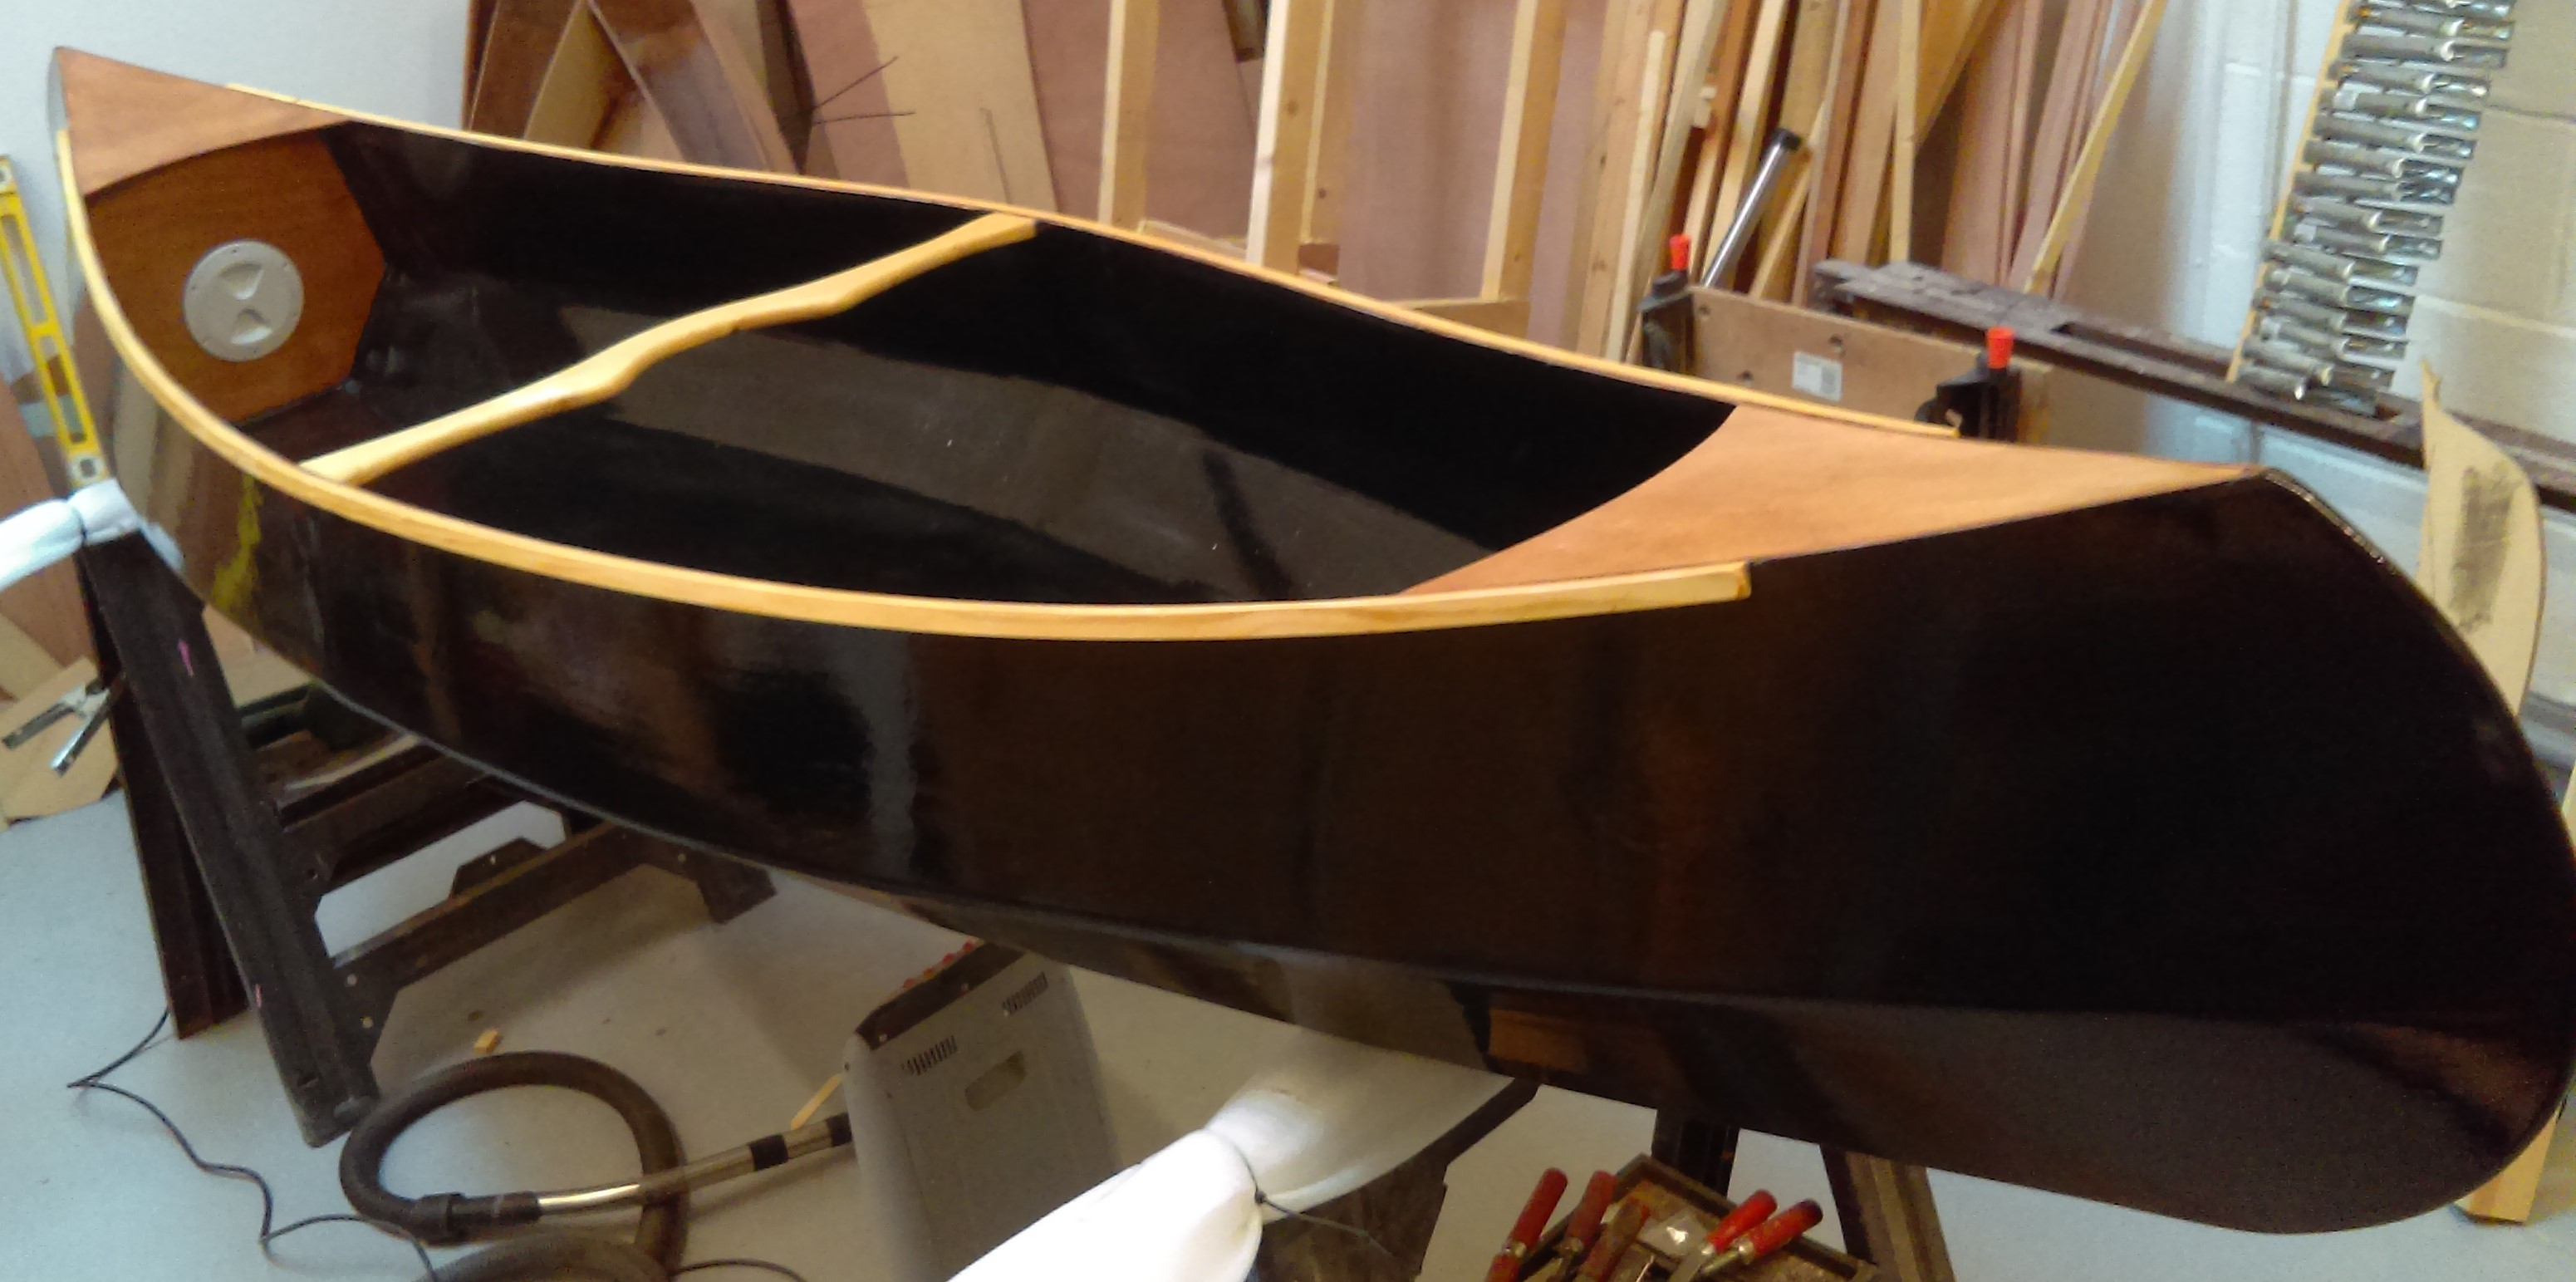 30 The boat is then glossed and varnished to finish